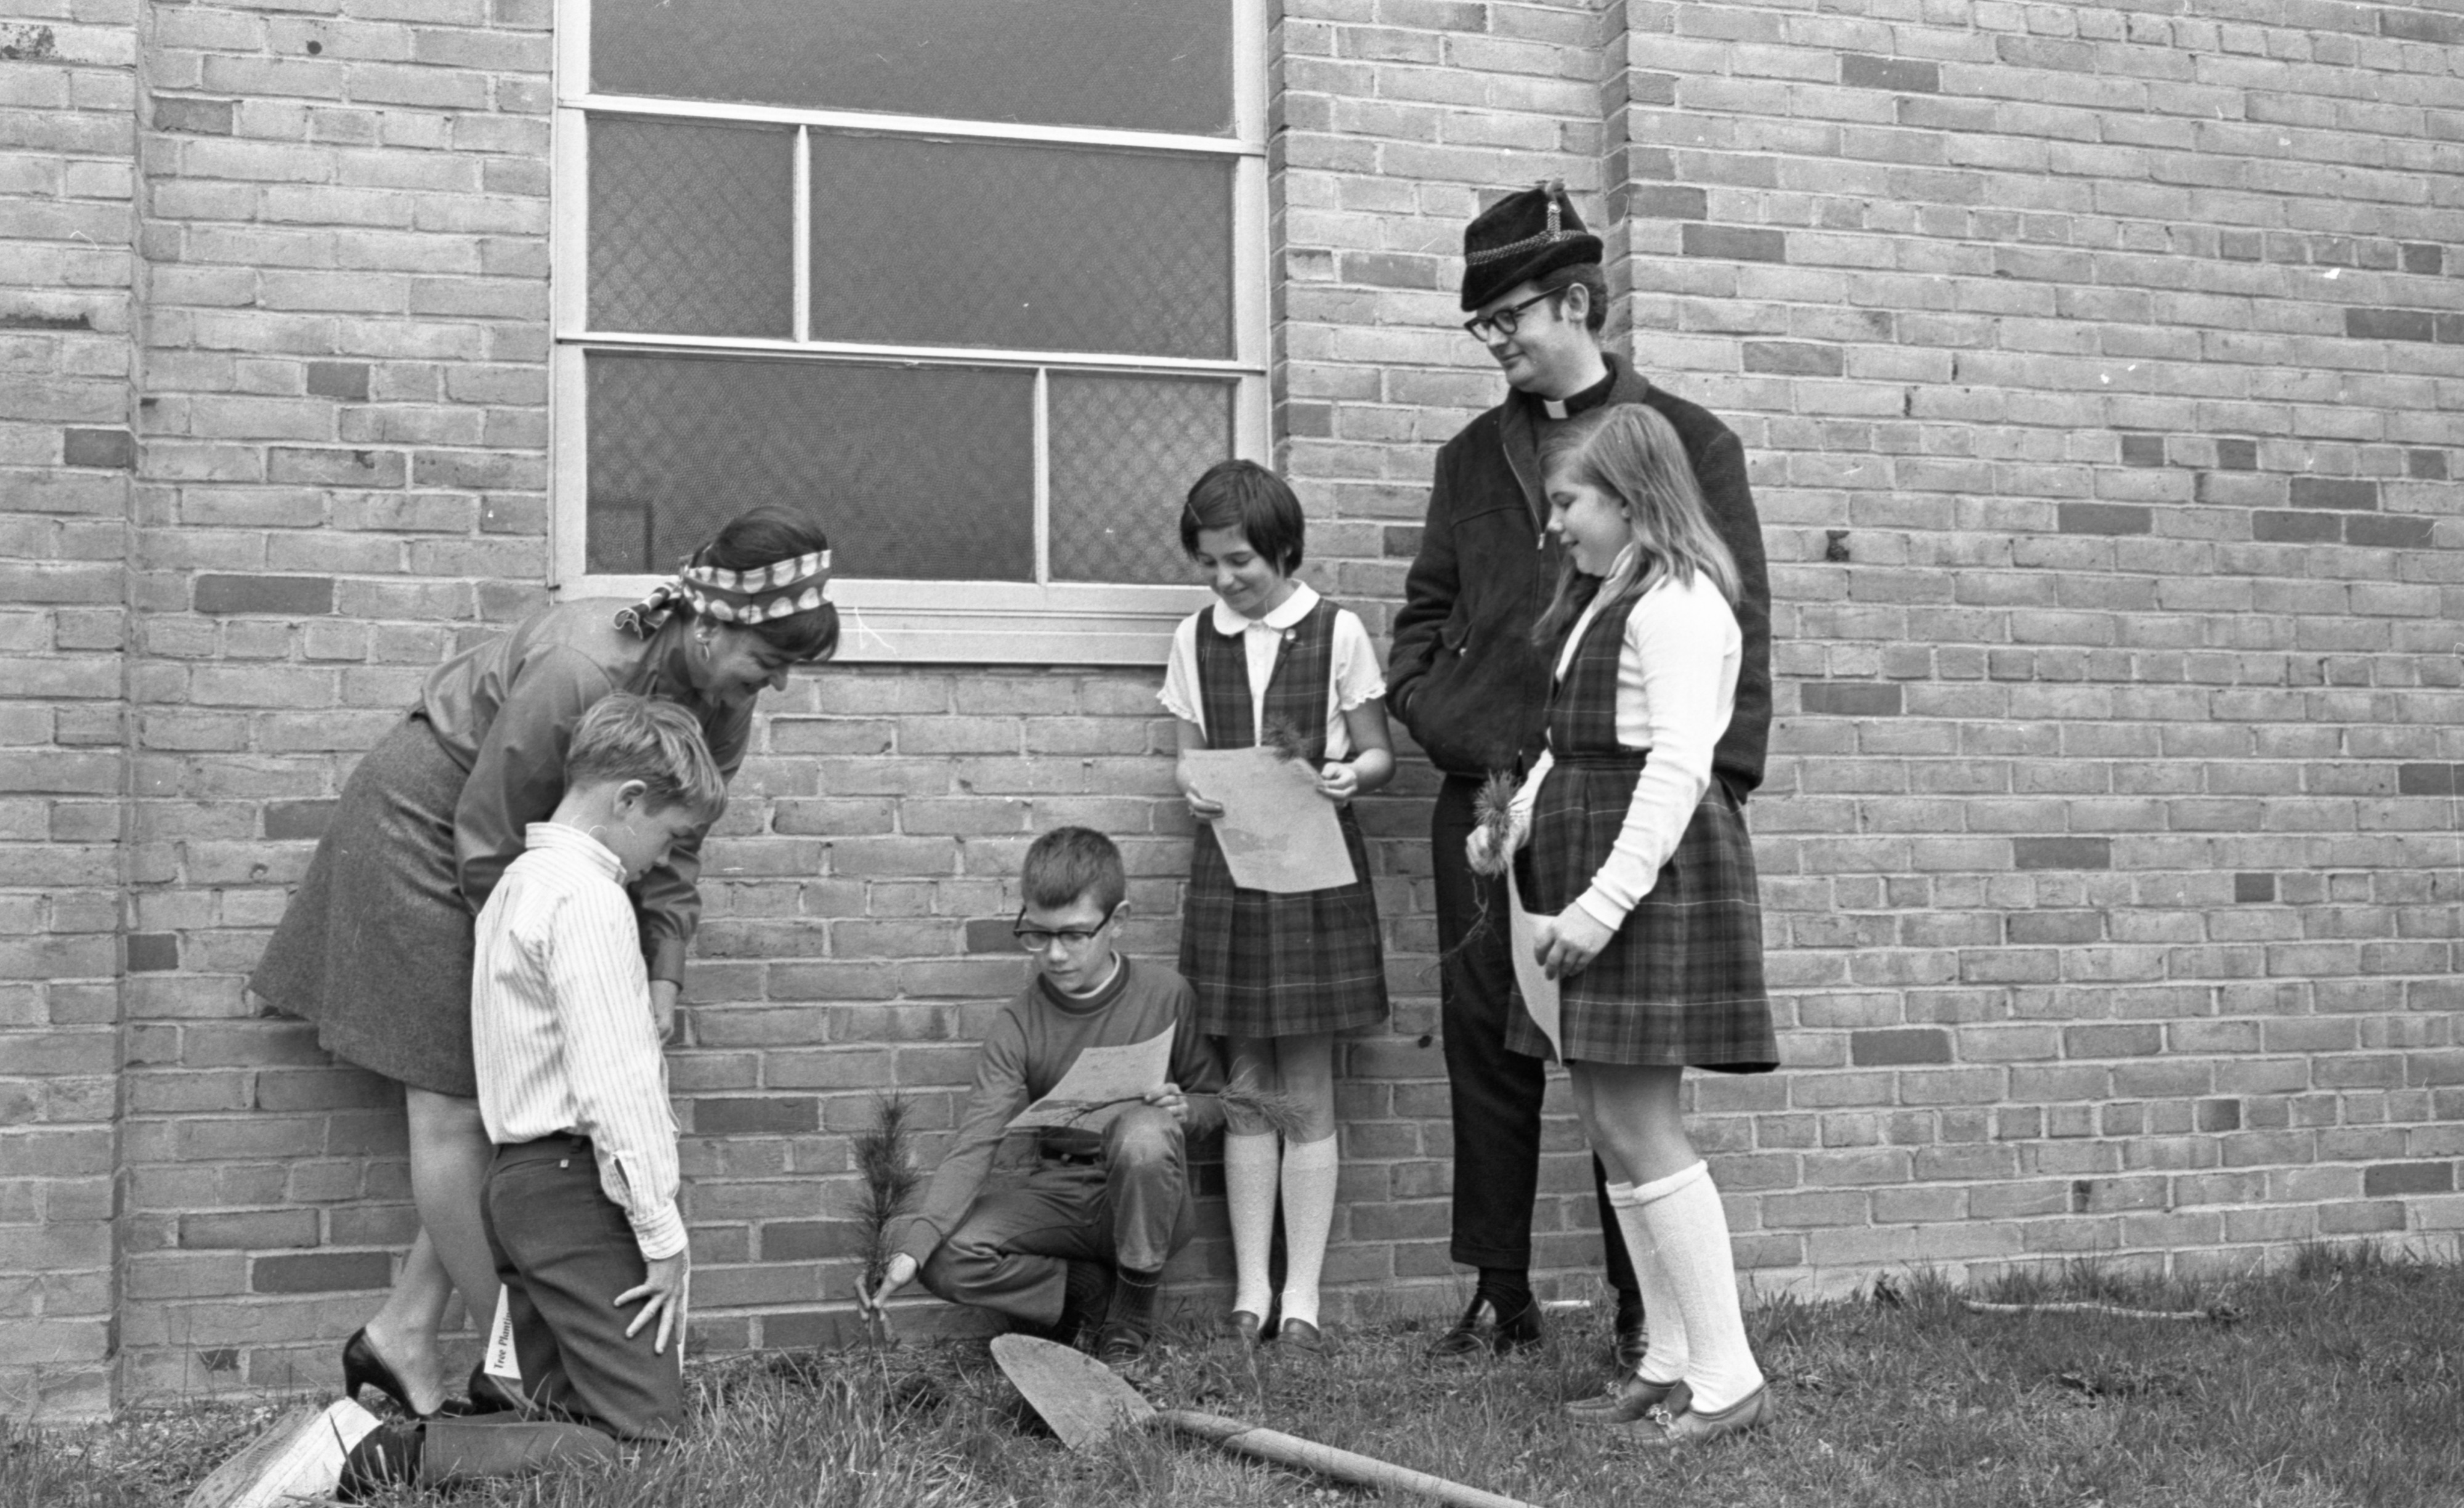 St. Francis Students Plant Trees Outside Their School, April 1970 image